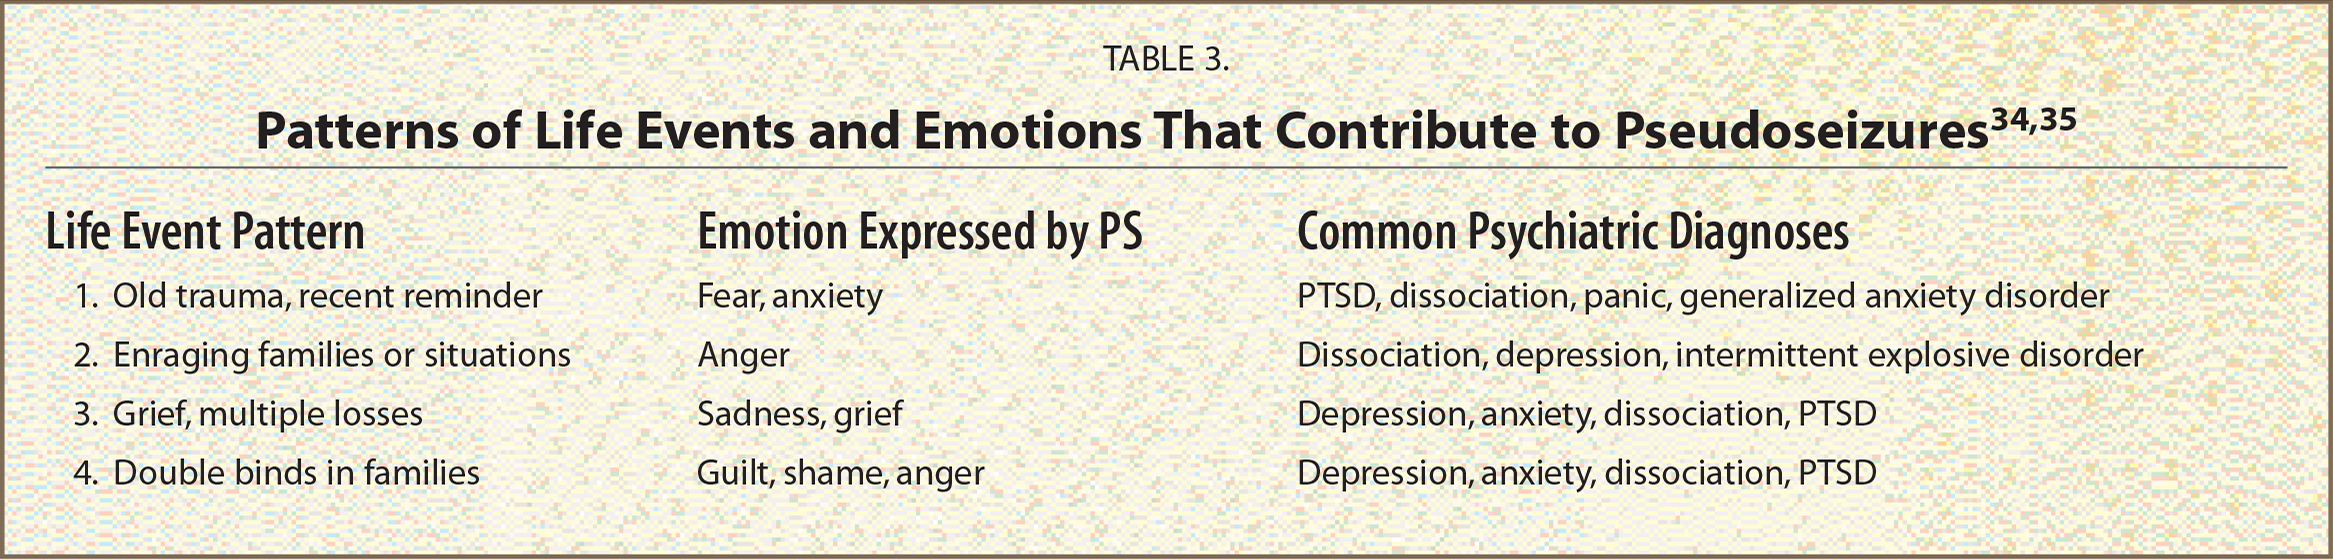 Patterns of Life Events and Emotions That Contribute to Pseudoseizures34,35